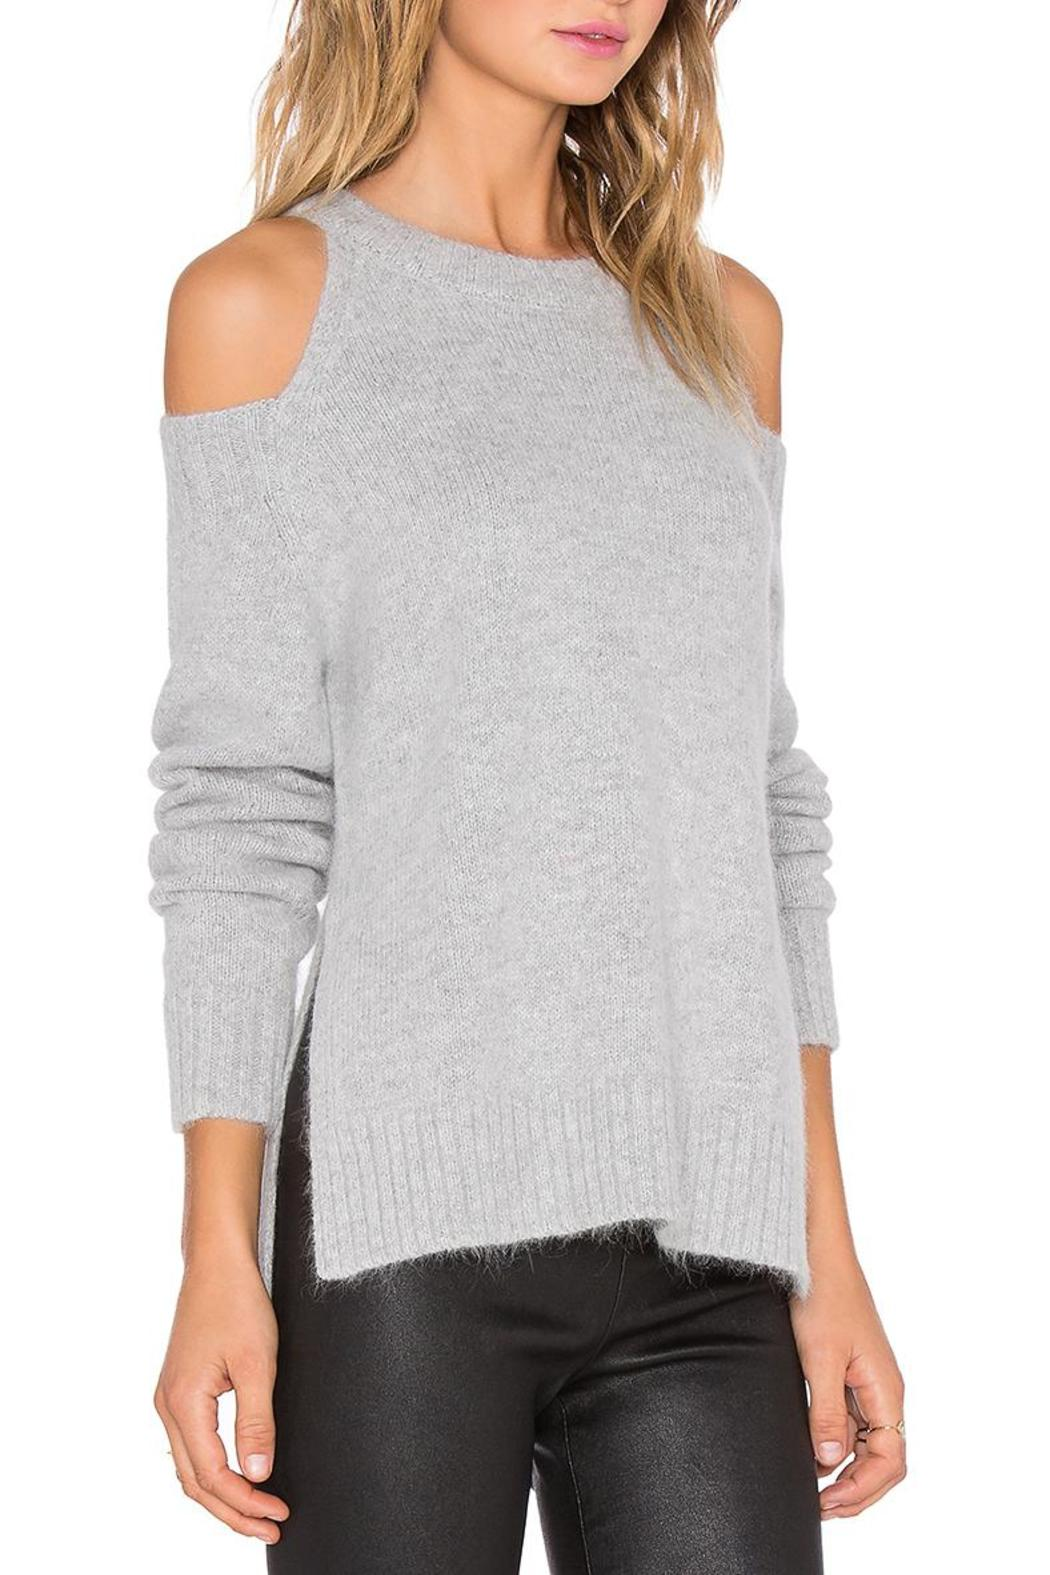 J.O.A. Cold Shoulder Sweater From New York By Village